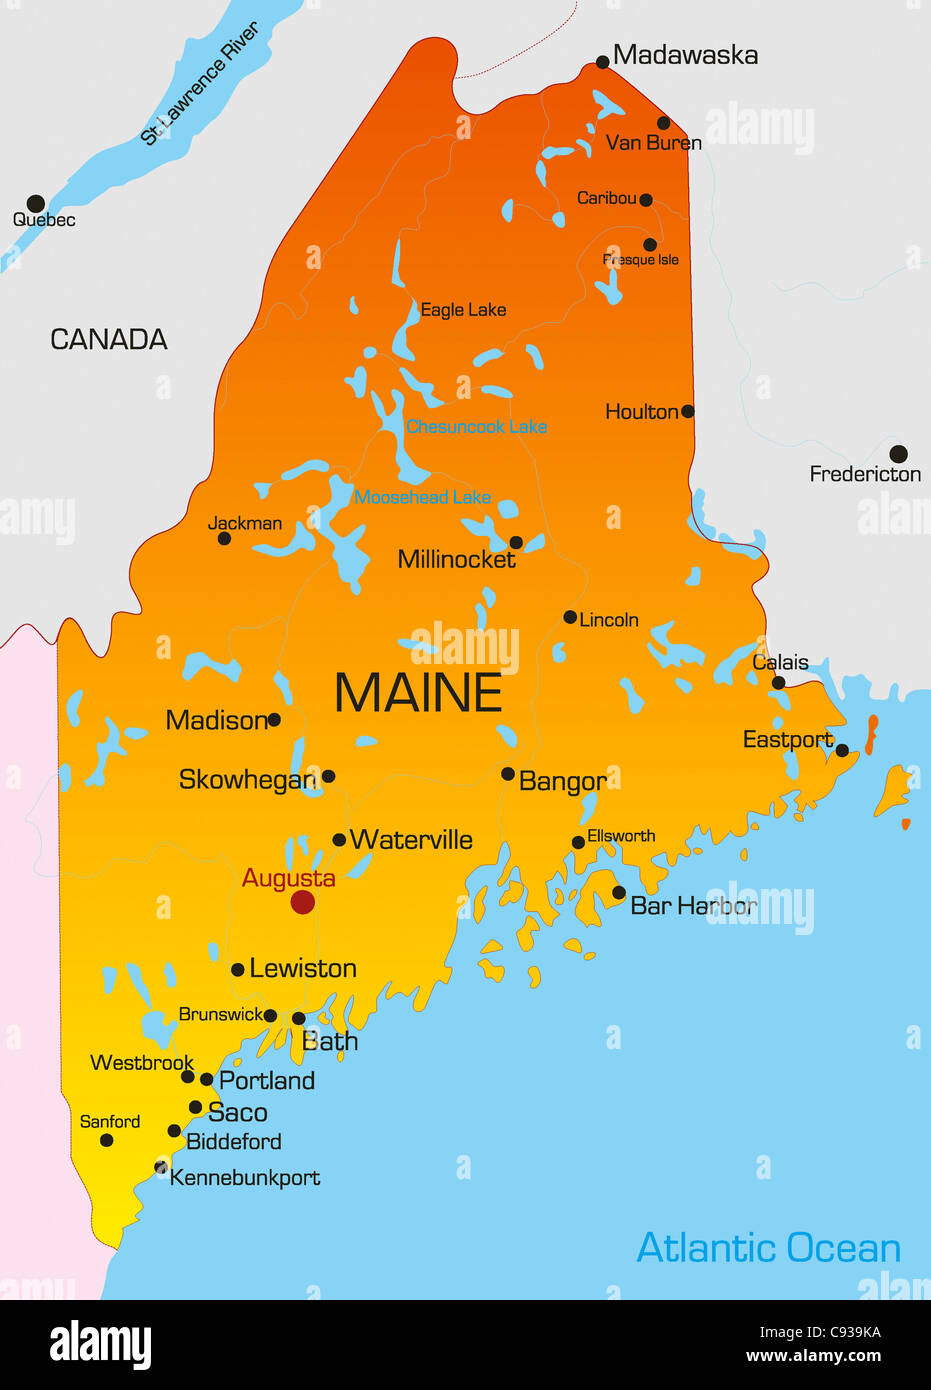 State Map Of Maine.Vector Color Map Of Maine State Usa Stock Photo 40026094 Alamy